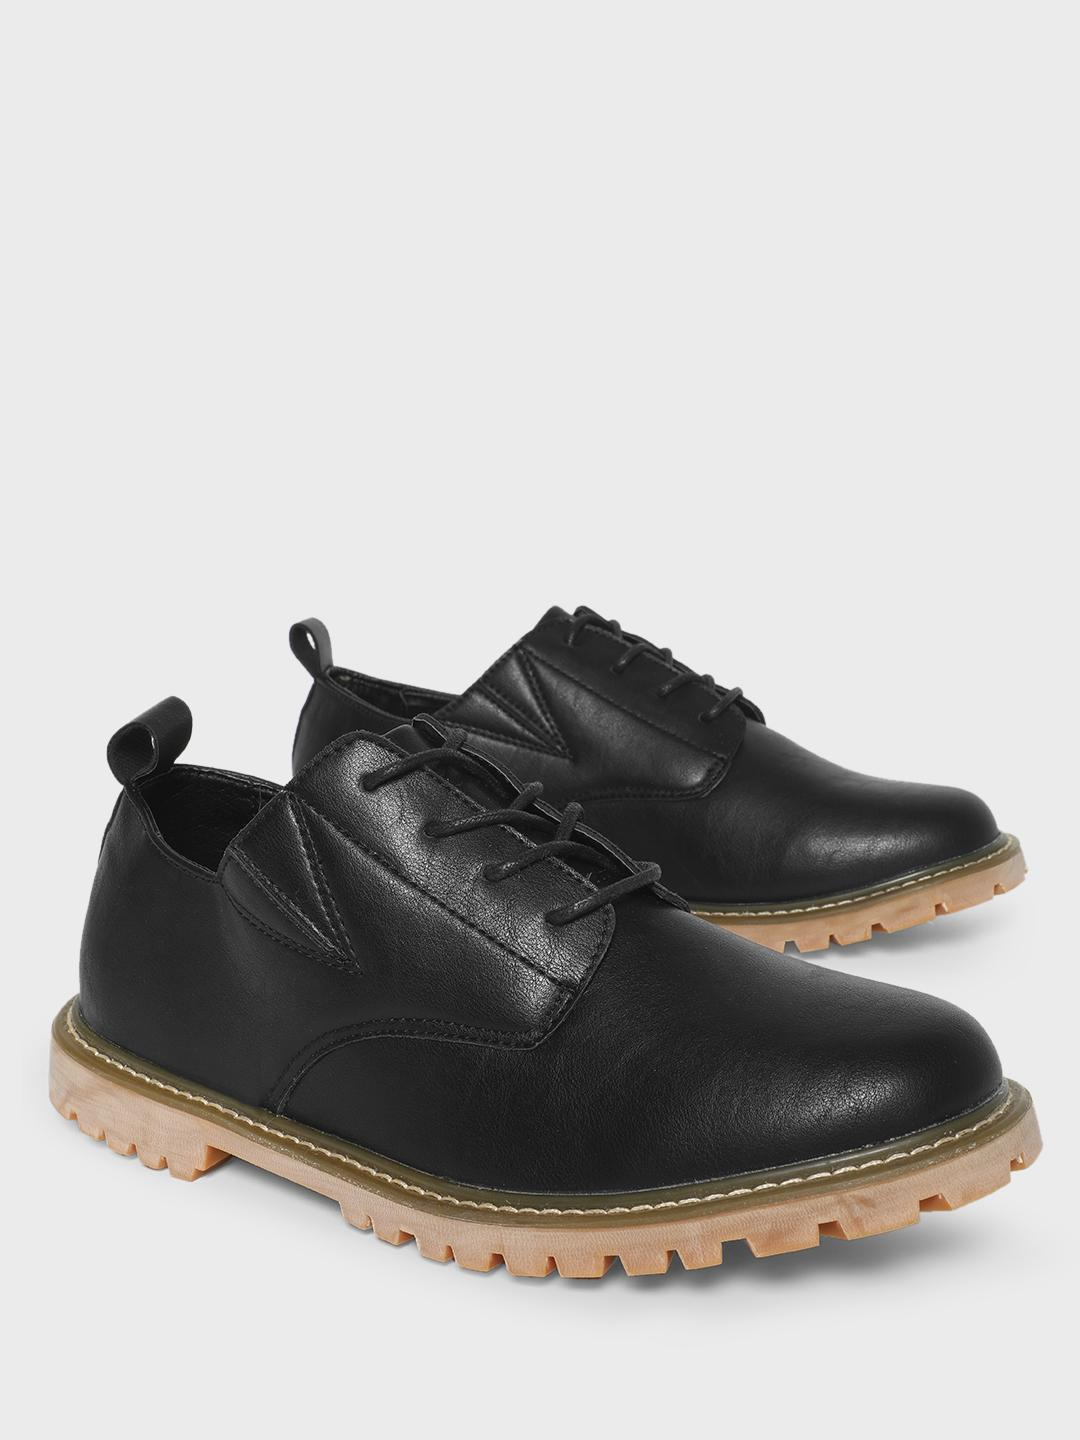 KOOVS Black Cleated Sole Boots 1